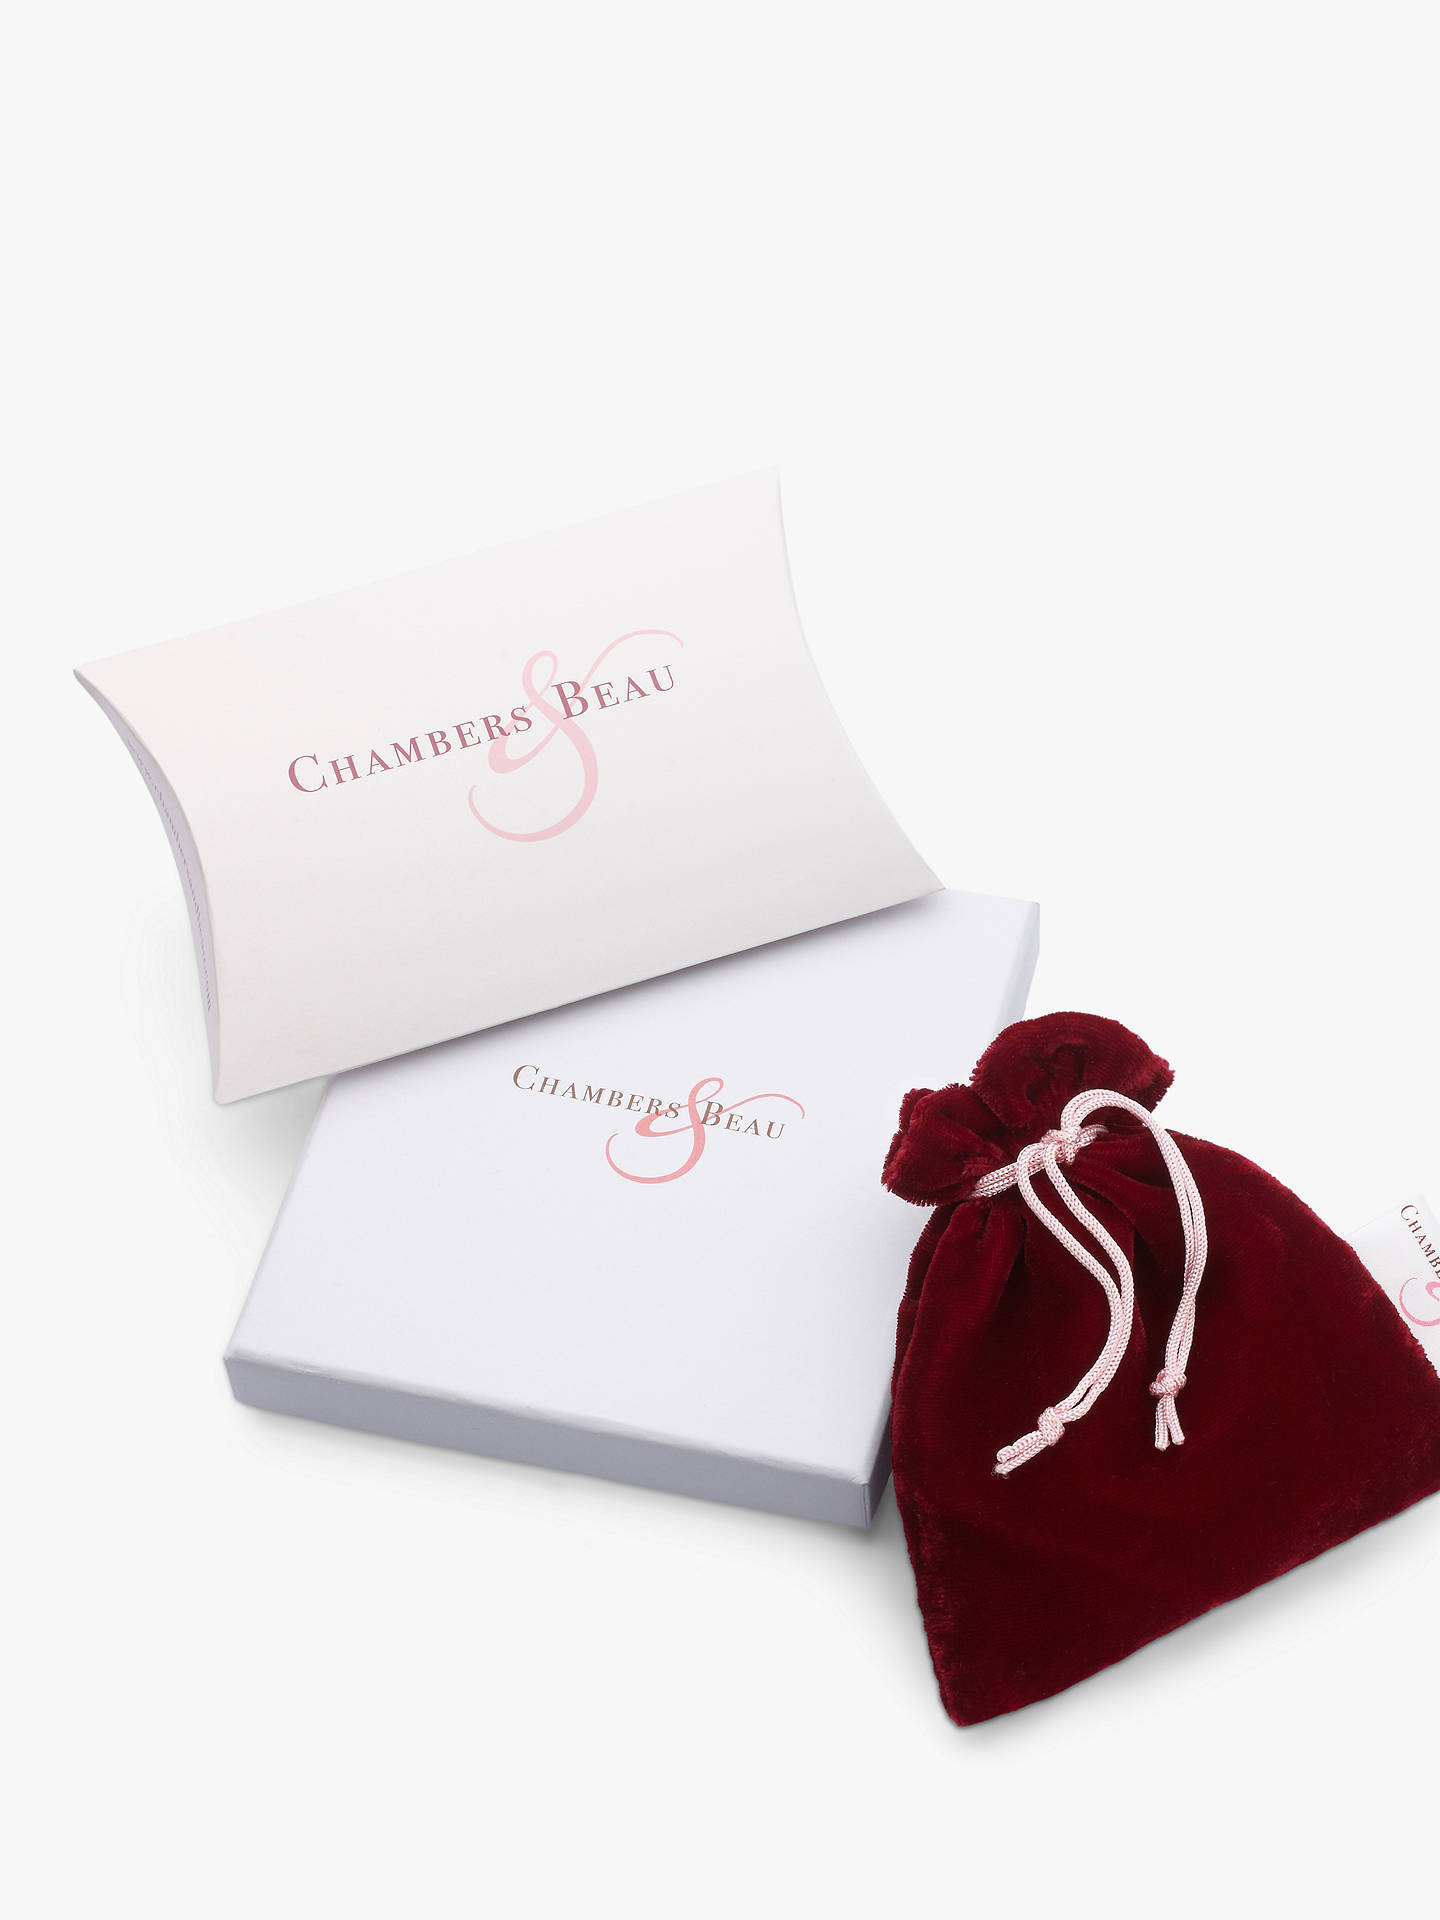 Buy Chambers & Beau Personalised Men's Double Tag Necklace Online at johnlewis.com